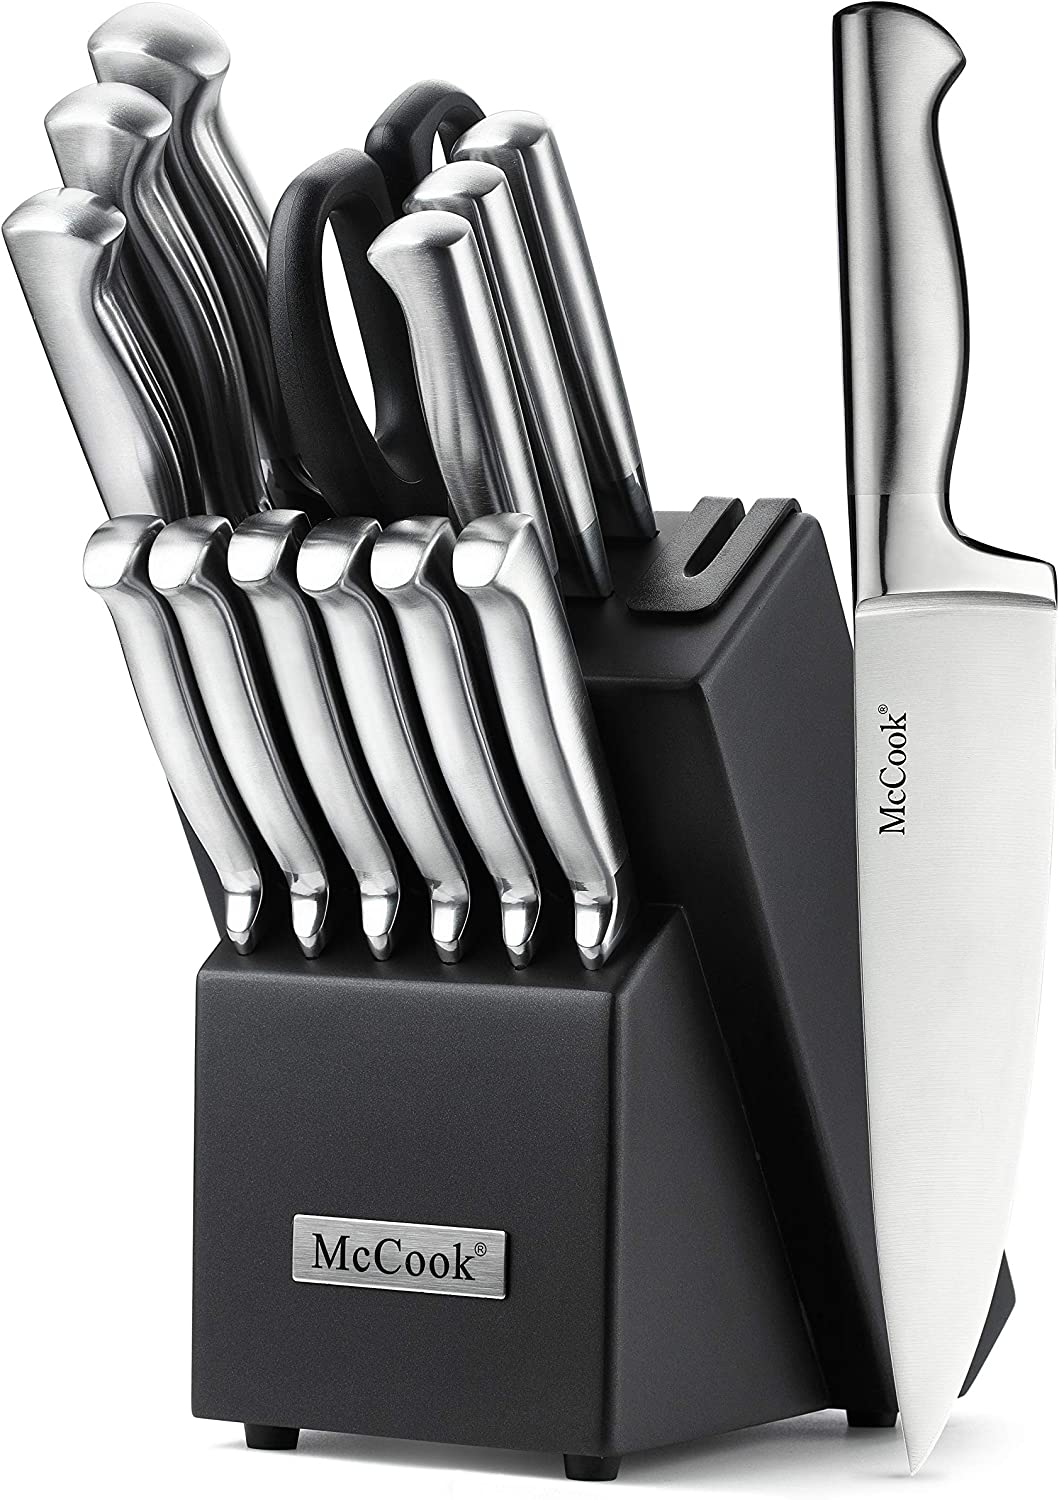 McCook MC21 15 Amazon Knife Block Set